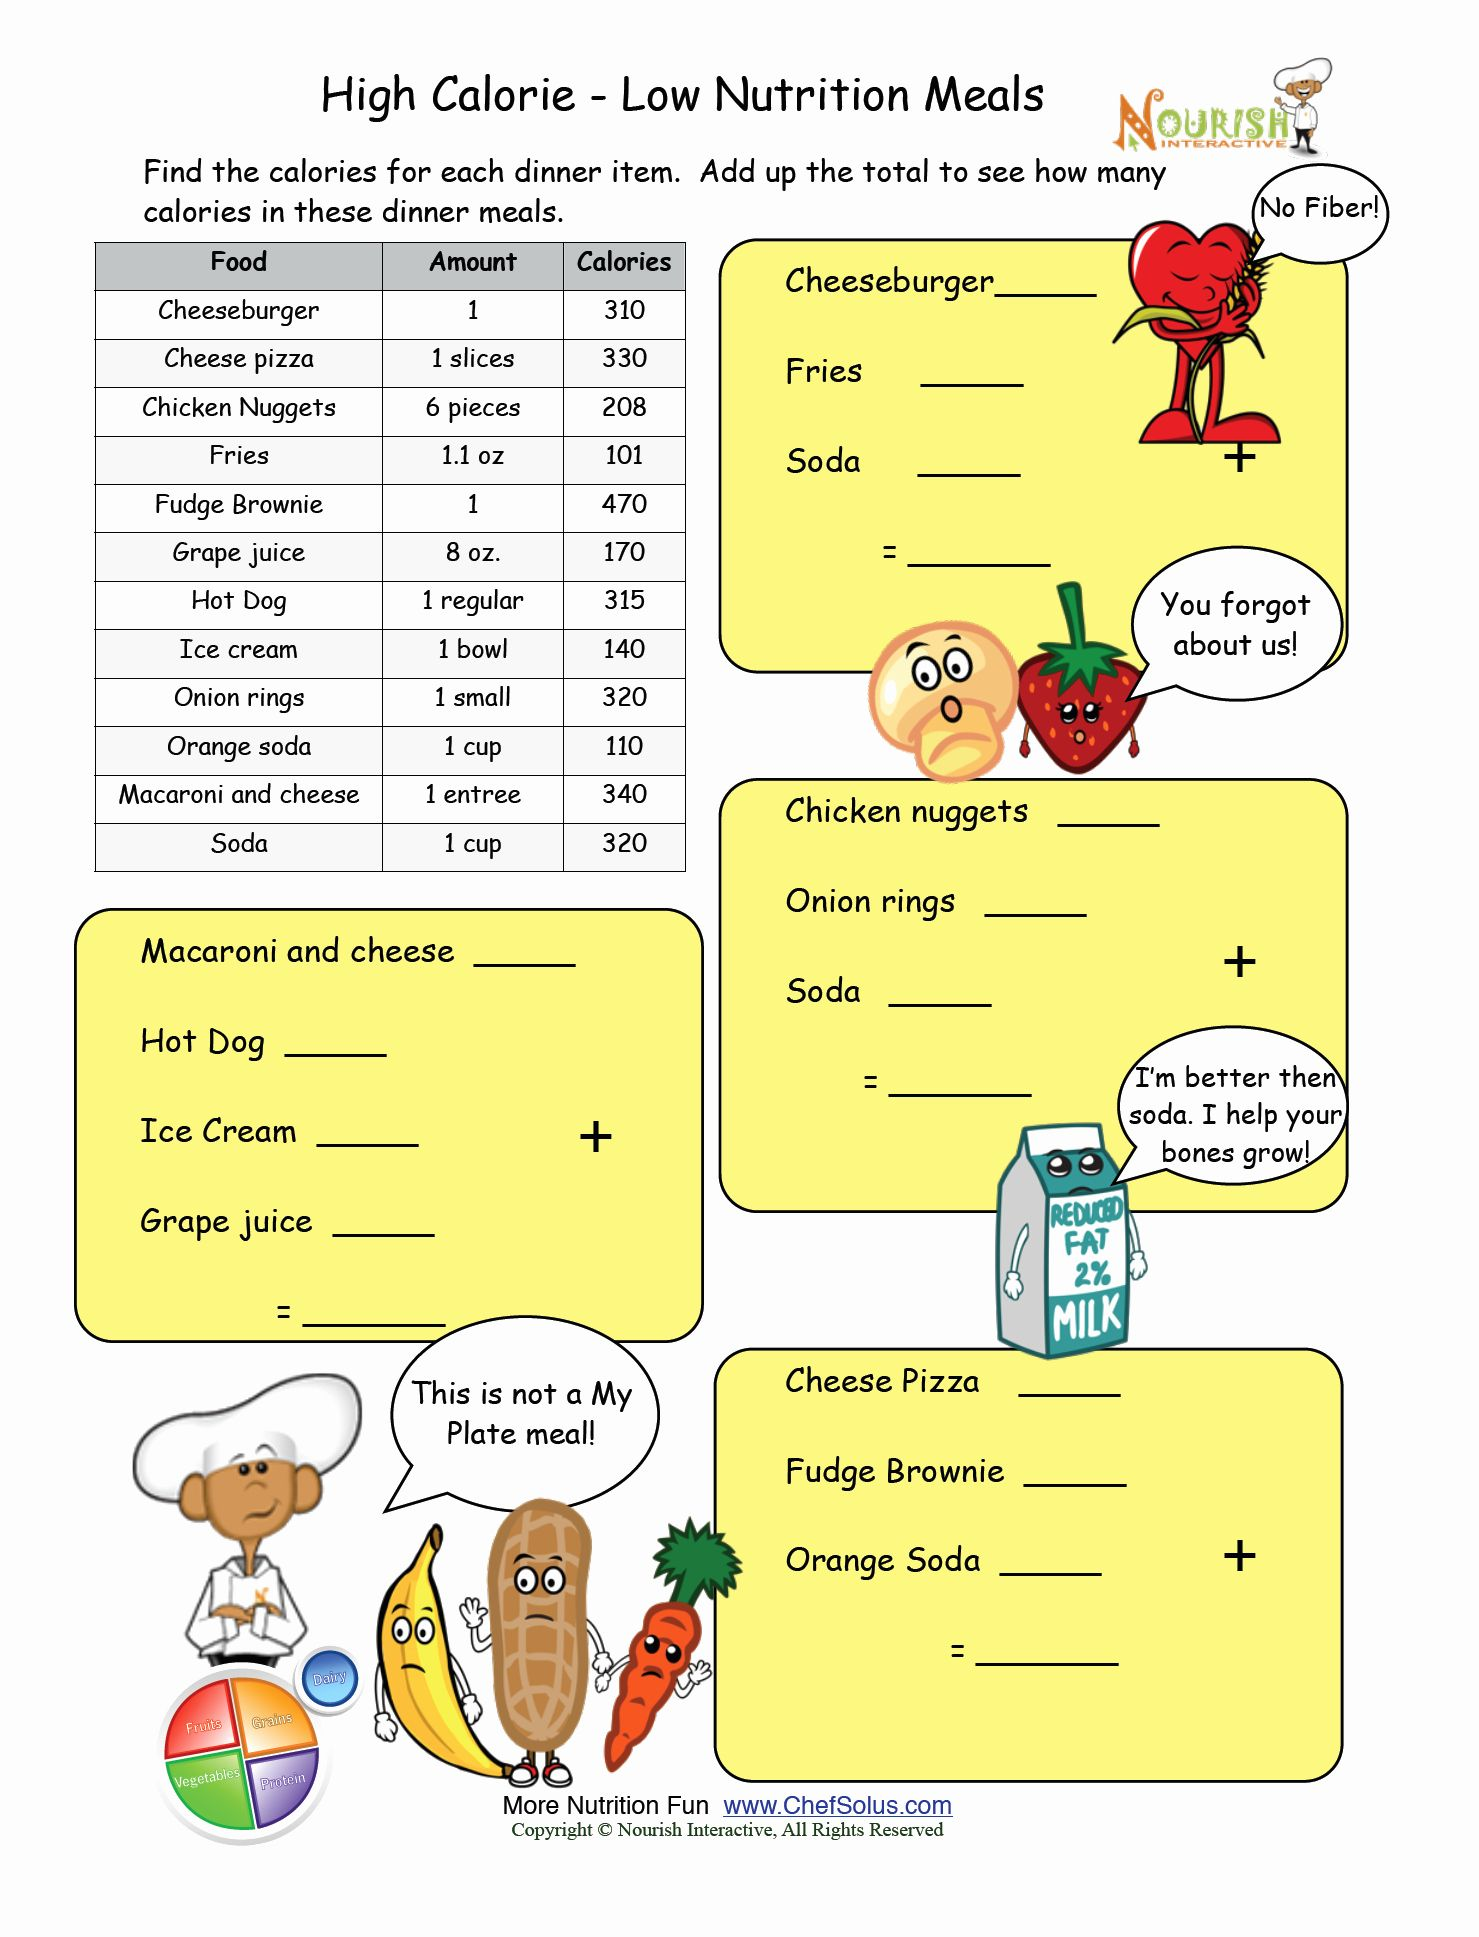 Nutrition Label Worksheet Answer Key Inspirational Pin On Nutrition Worksheets And Games In 2020 Nutrition High Calorie Dinners Nutrition Activities